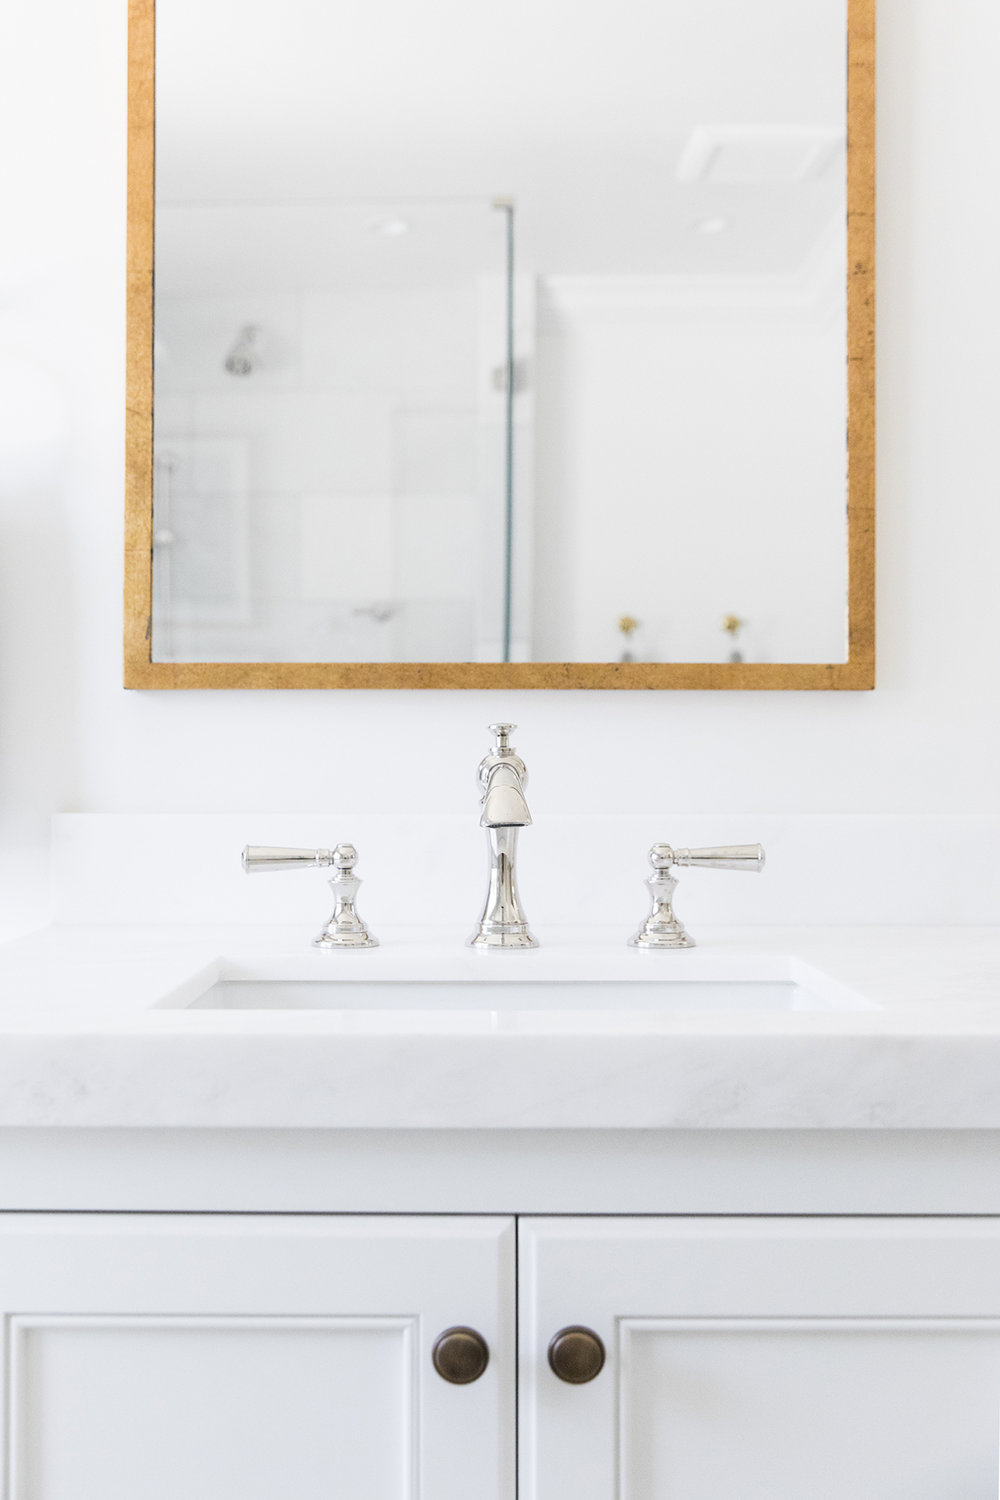 Clean and coastal bathroom with pendant over bathtub, brass and polished nickel decor in bathroom | Studio McGee Design